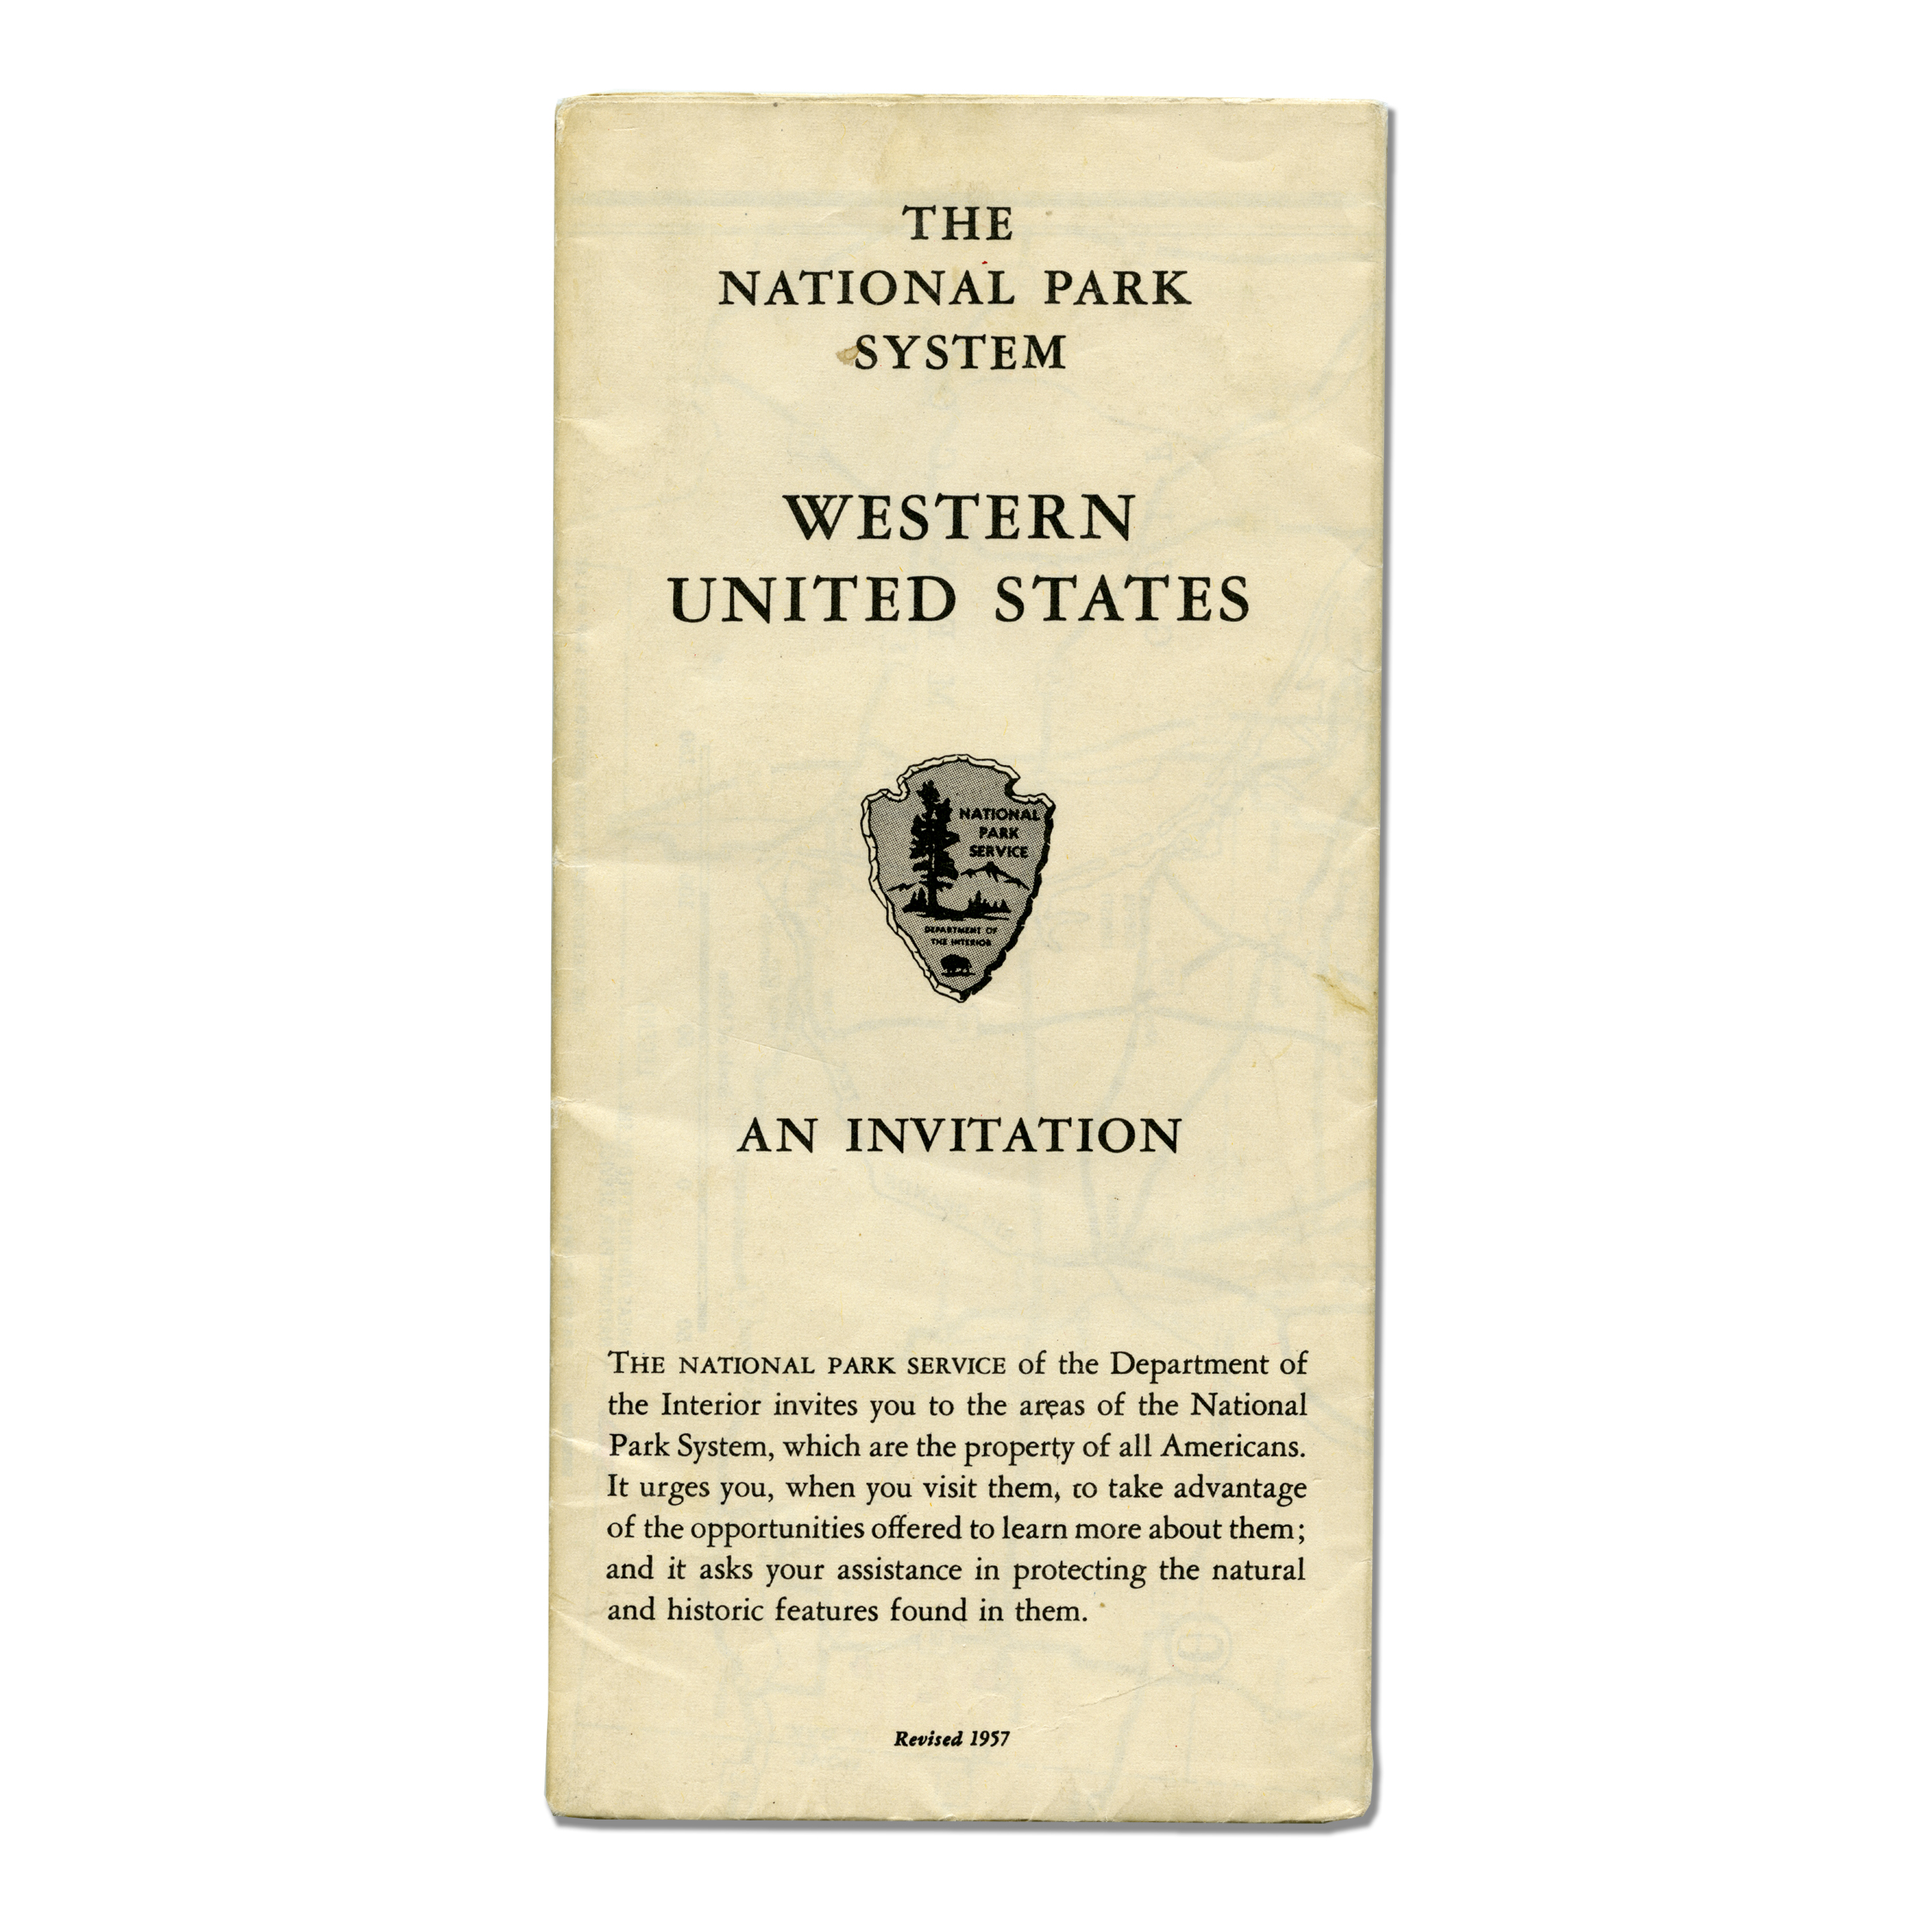 1957_national_parks_service_invitation_to_parks_of_western_united_states_brochure.jpg